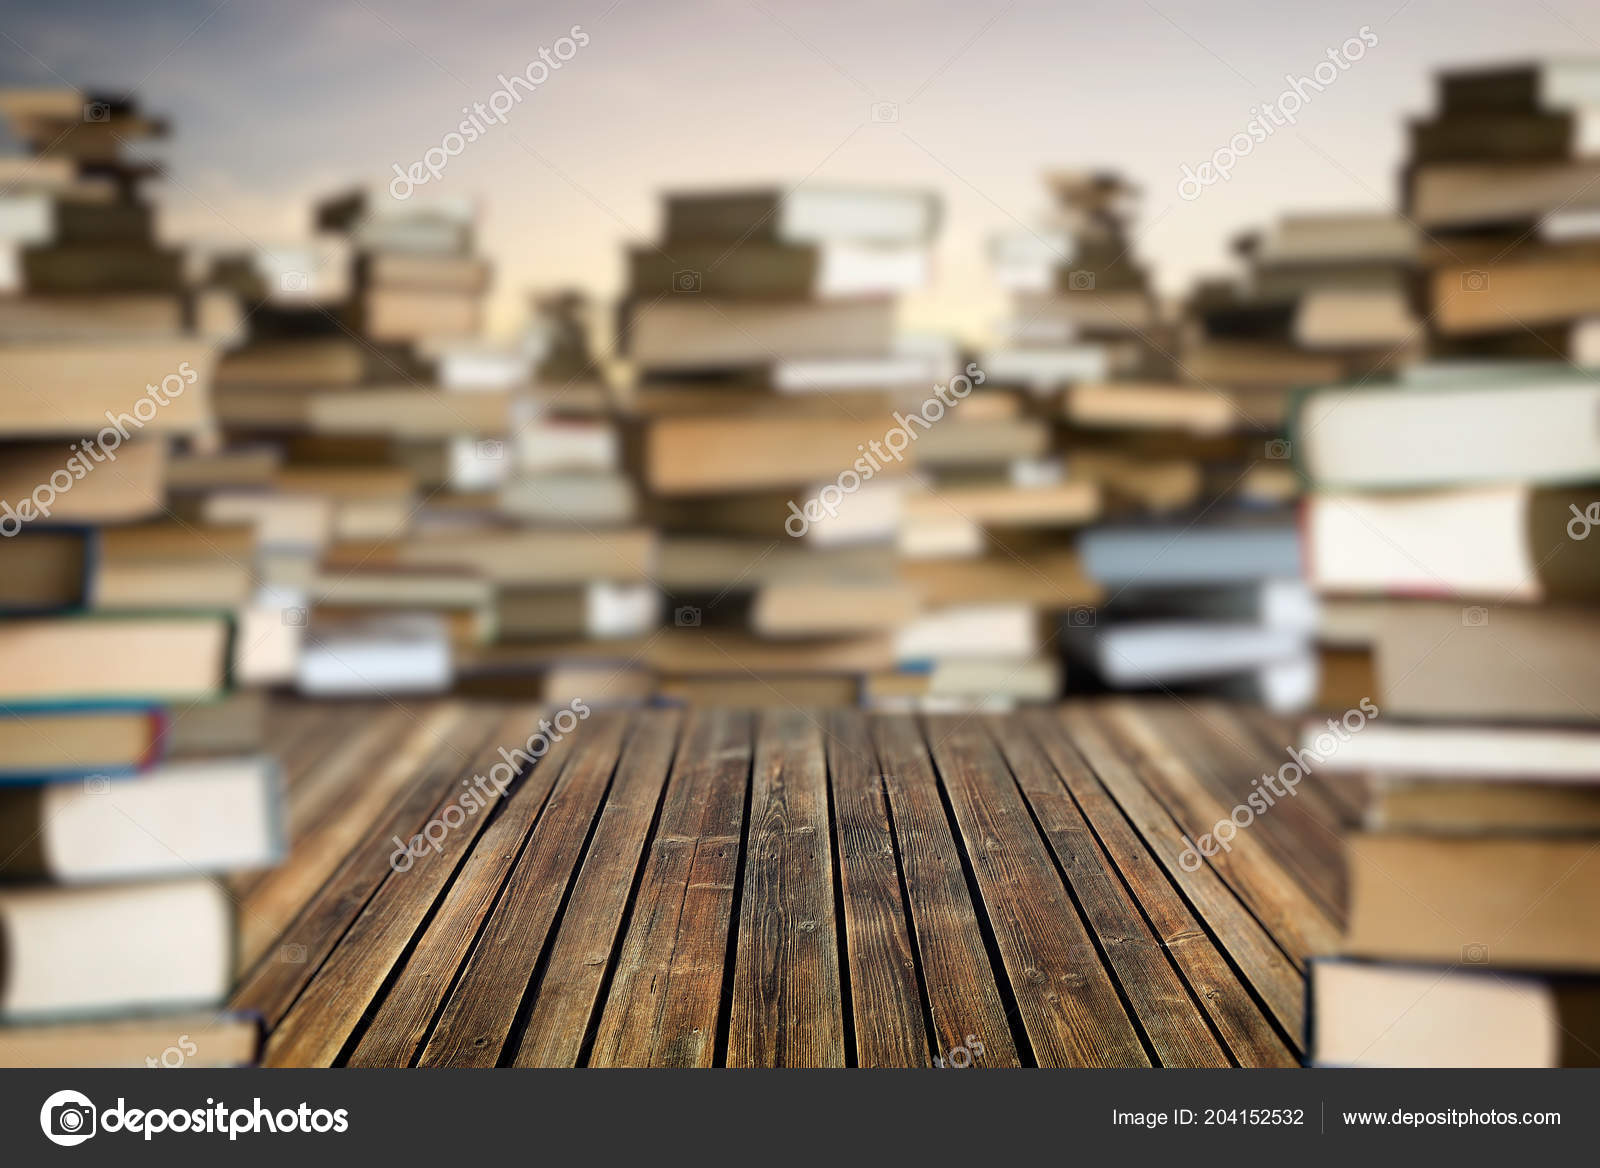 space stacks books lots books gaining knowledge education concept